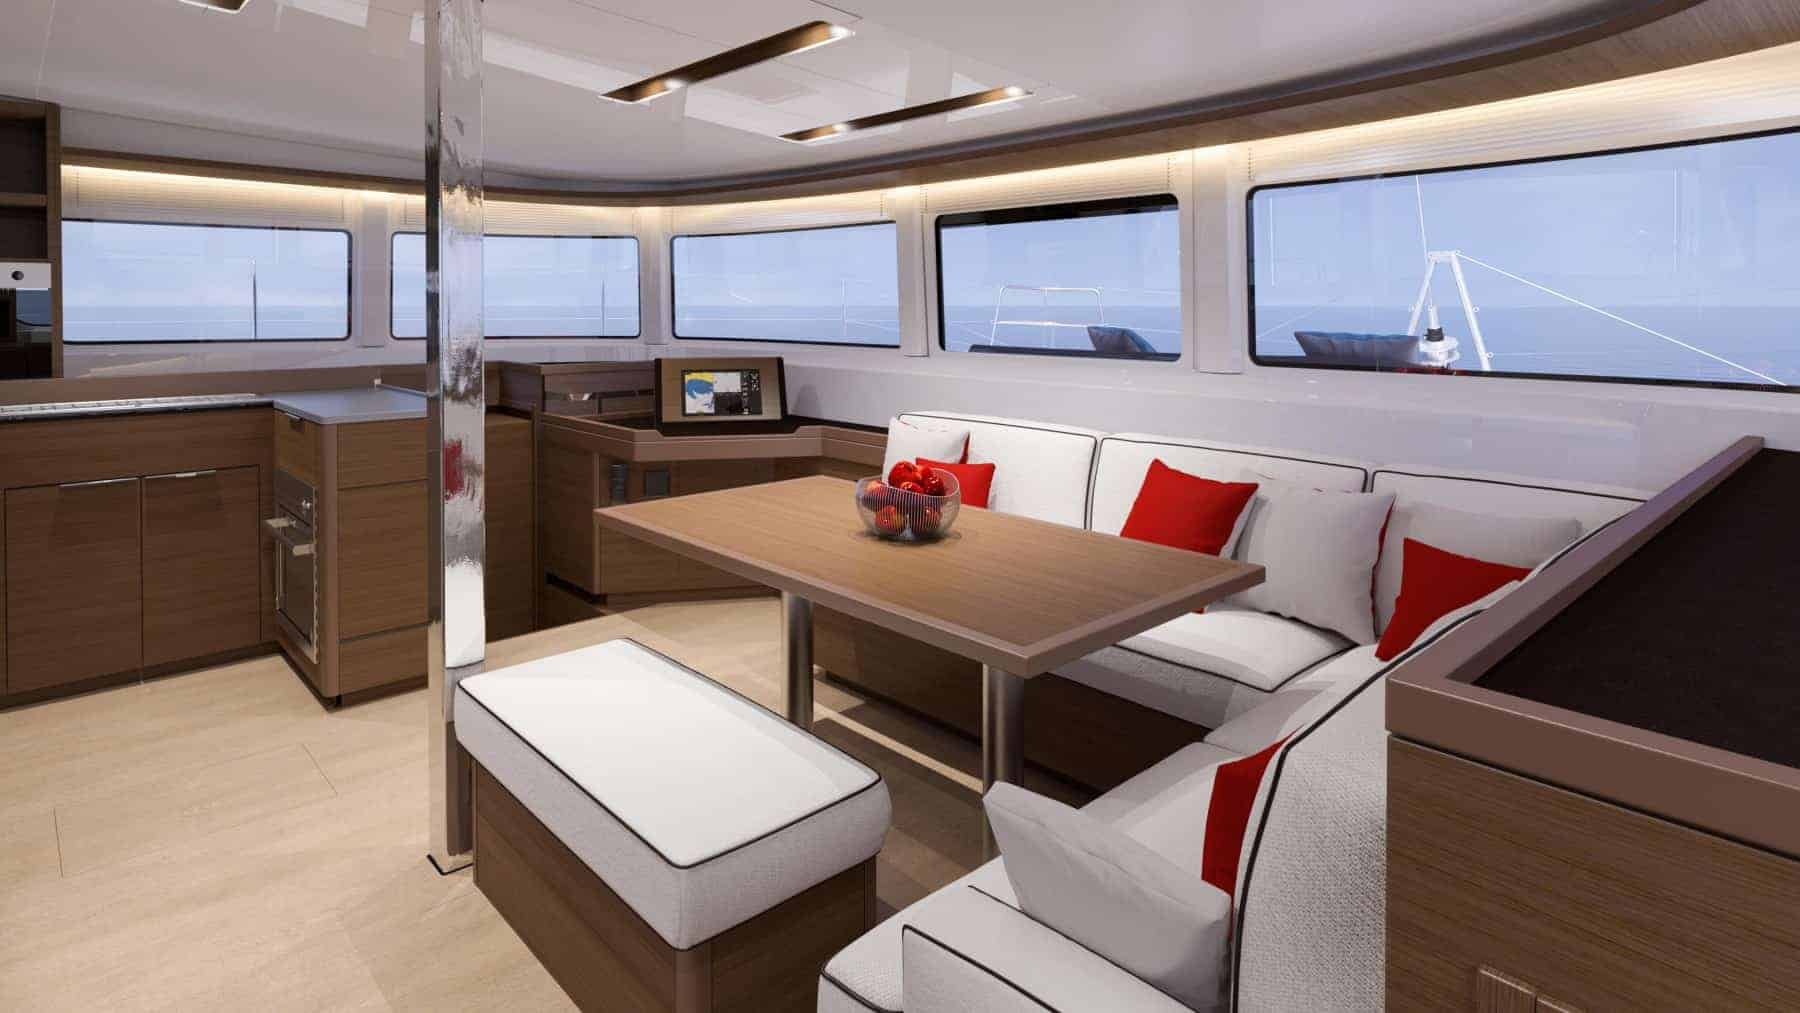 The relaxing interior design of the Saloon of a Lagoon 46 yacht